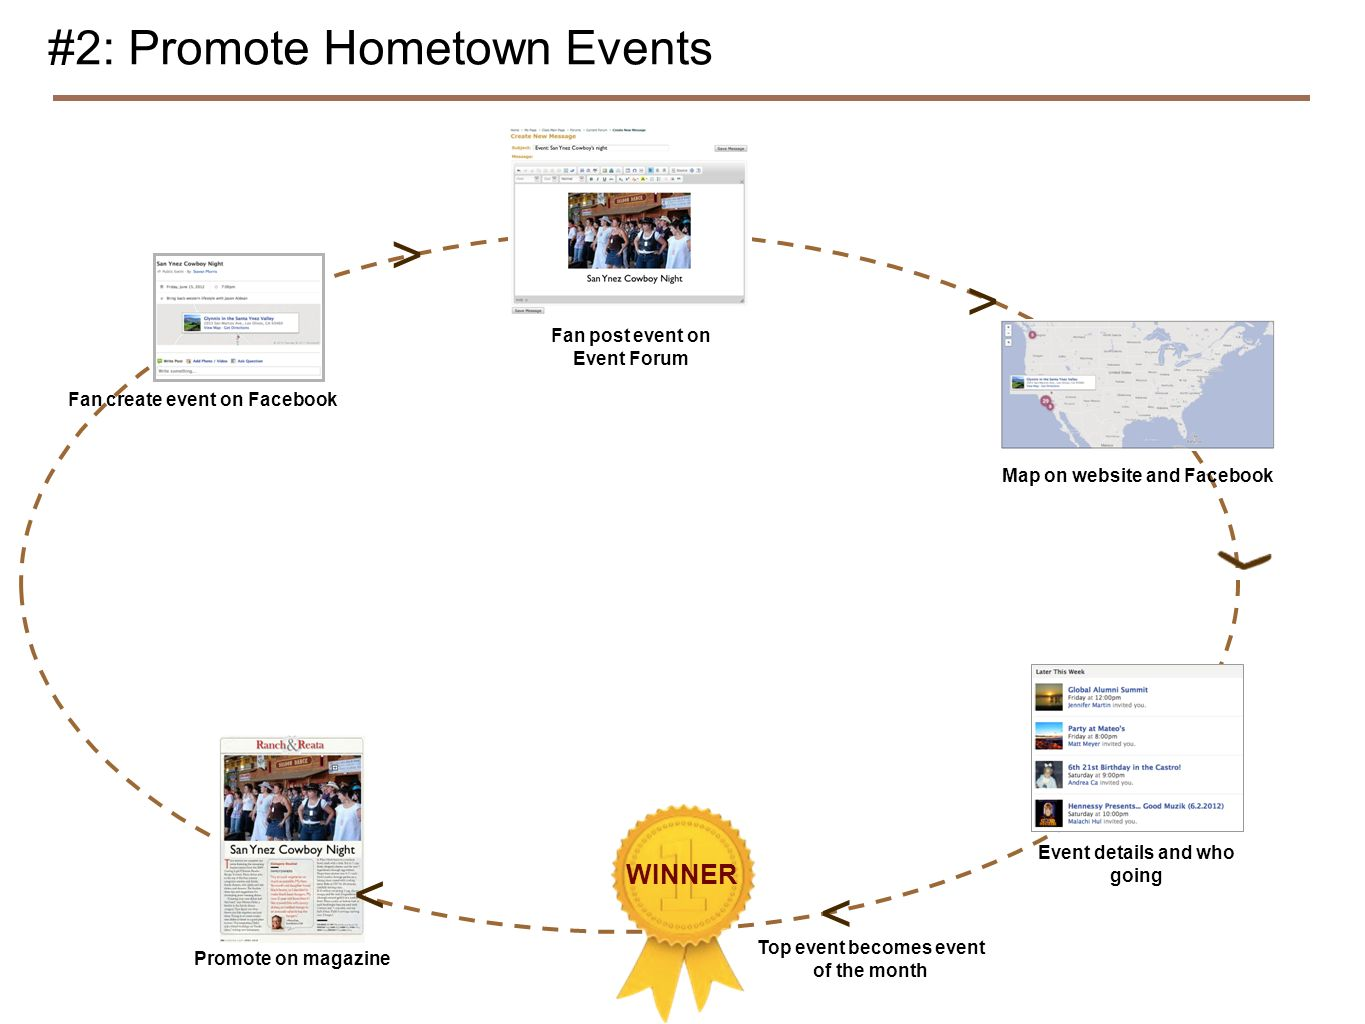 #2: Promote Hometown Events Fan create event on Facebook Fan post event on Event Forum Map on website and Facebook Event details and who going WINNER